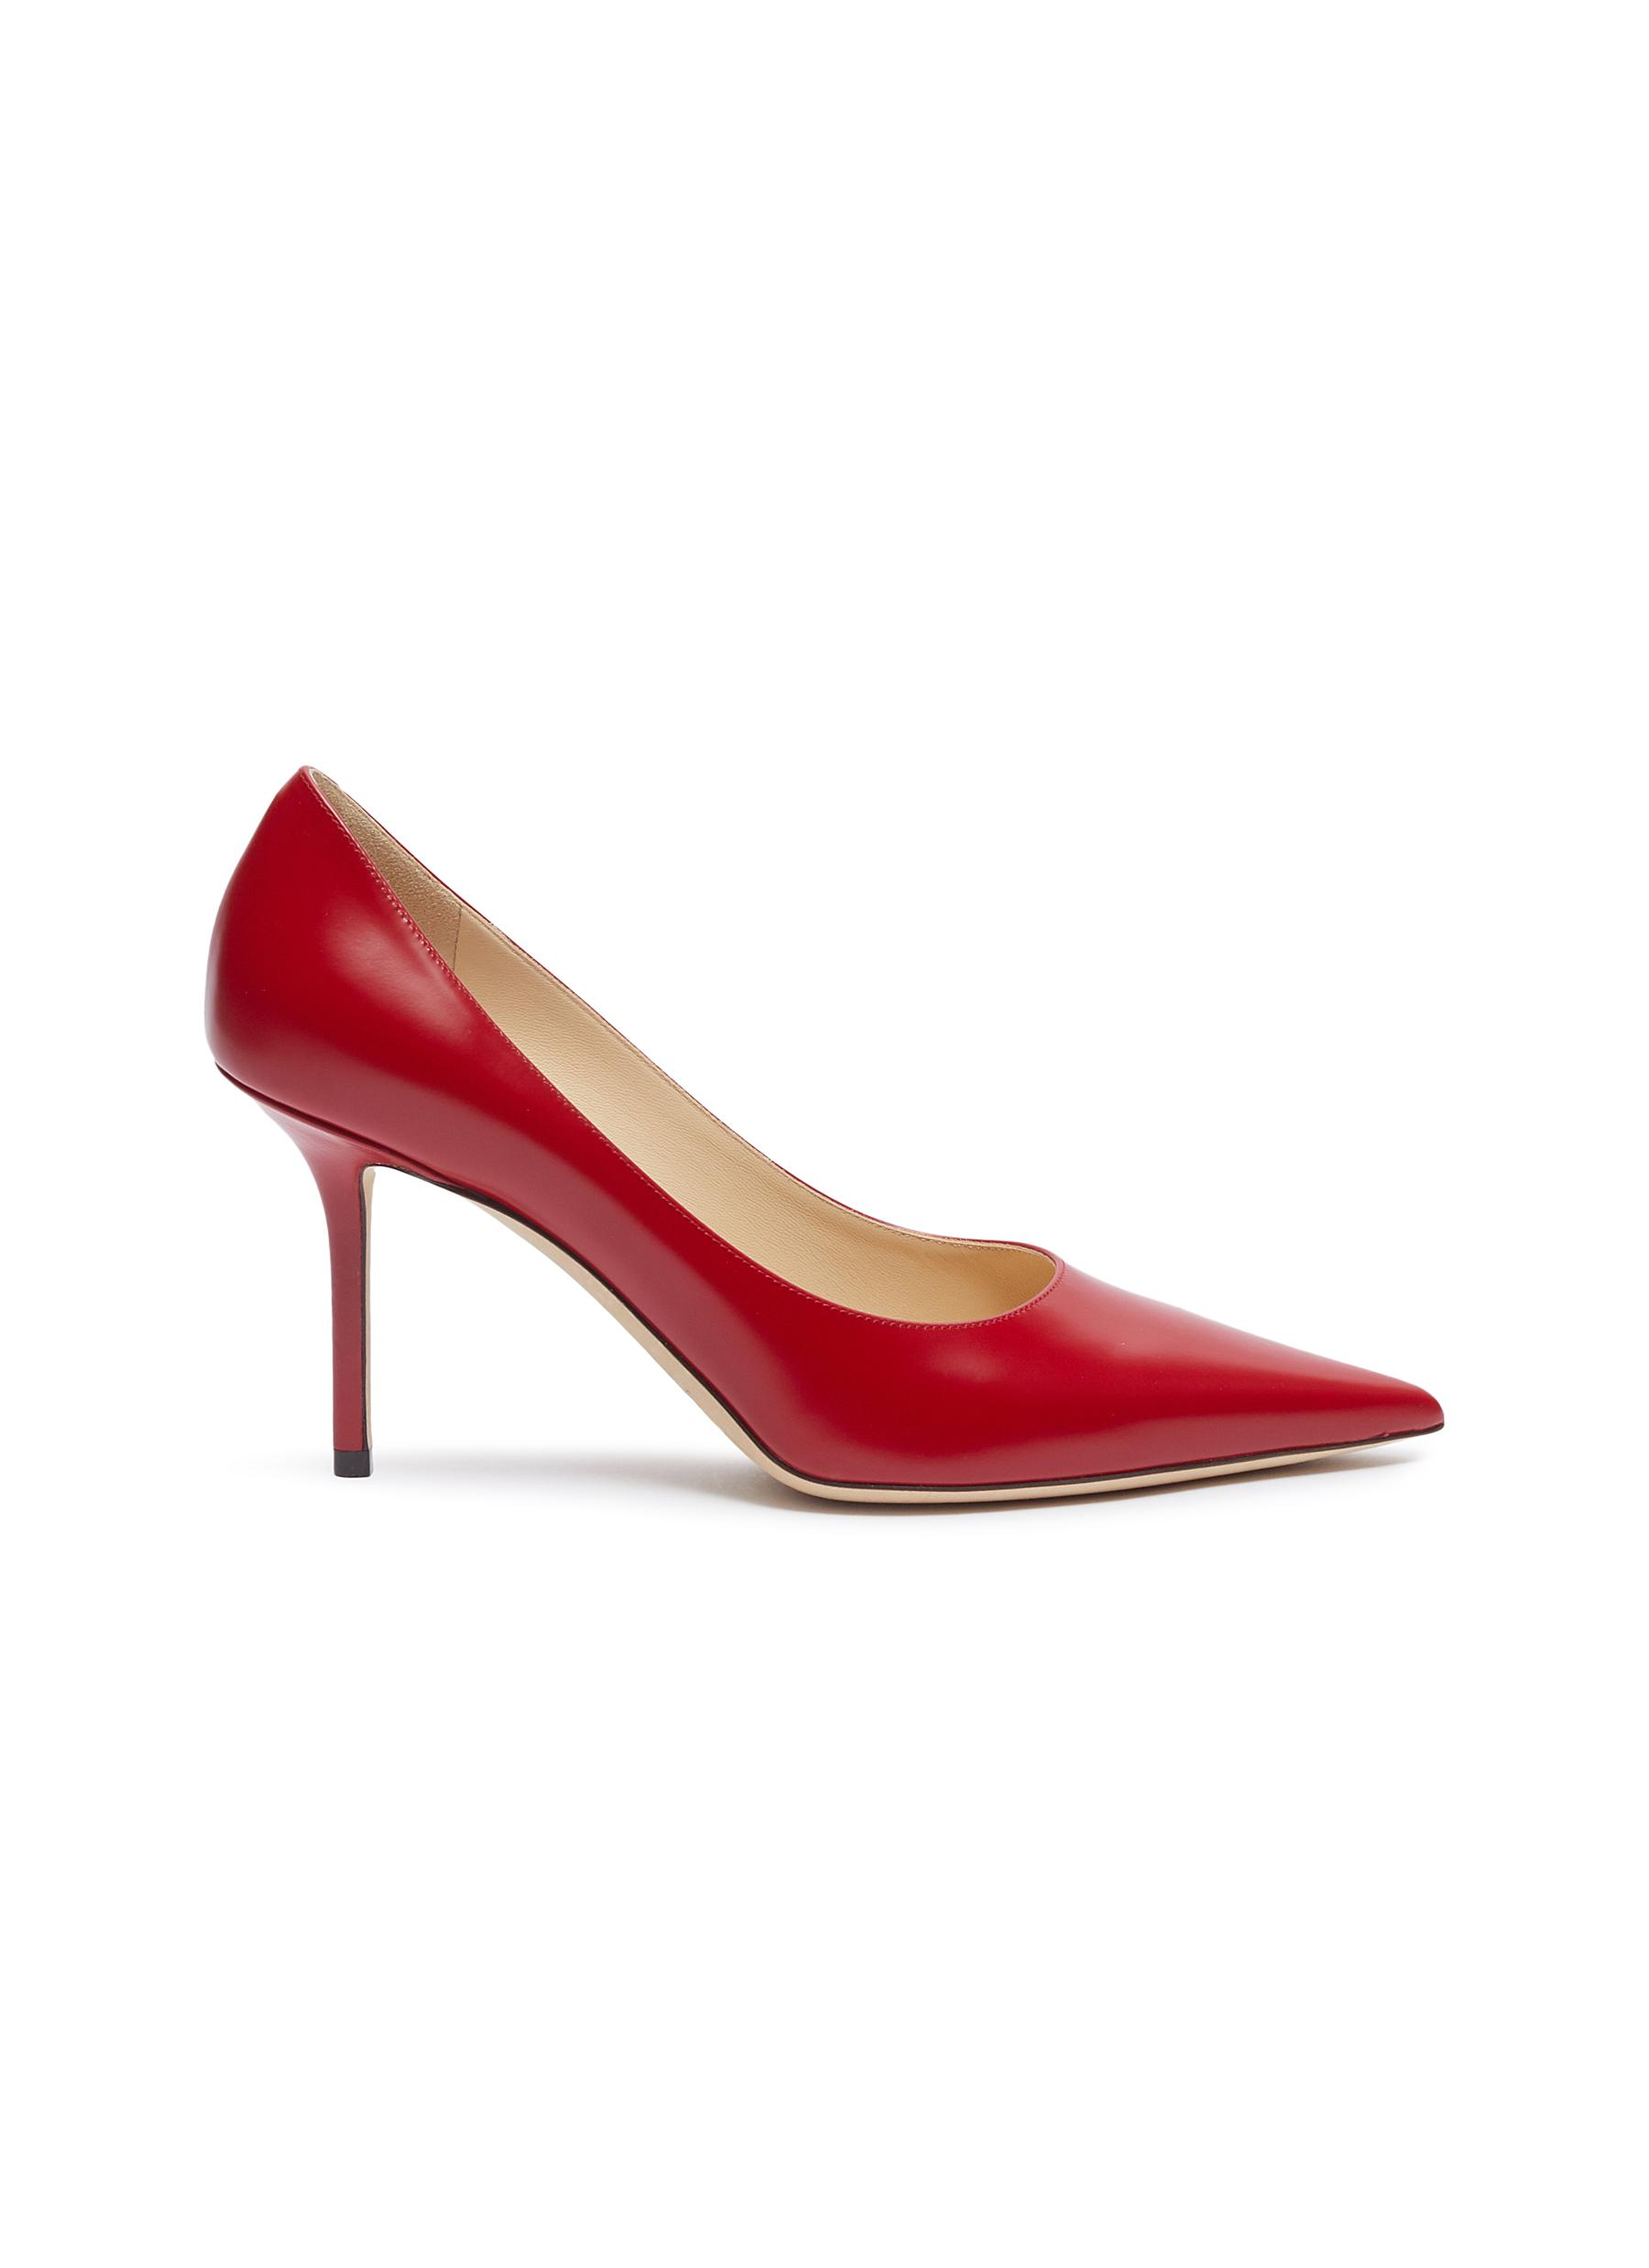 Love 85 liquid leather pumps by Jimmy Choo